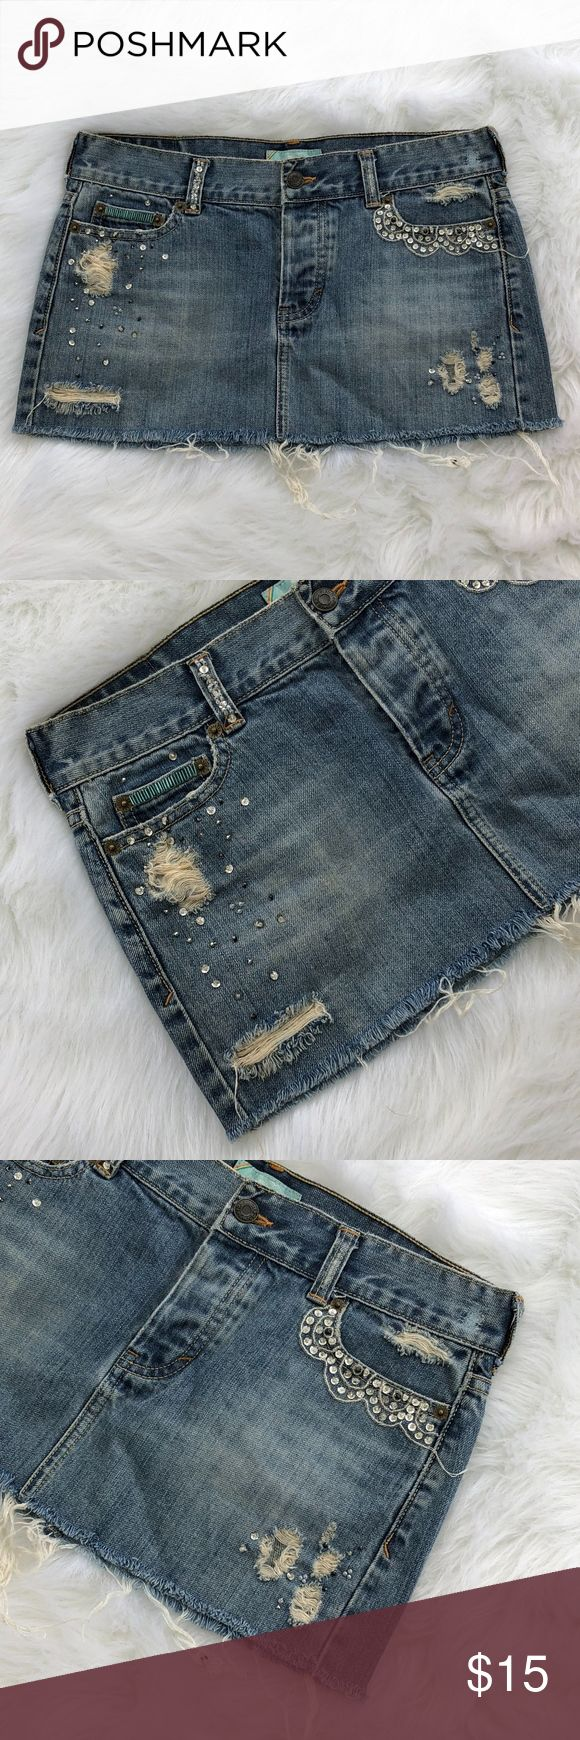 """Hollister Destroyed Denim Mini Skirt, Size 3 Brand: Hollister Size: 3 Material: 100% Cotton Condition: Pre-owned in good condition with no rips, stains, or tears  Approx. Measurements Waist: 30"""" Length: 10""""  Tags: deconstructed, jean, pearls, sequins, distressed Hollister Skirts Mini"""